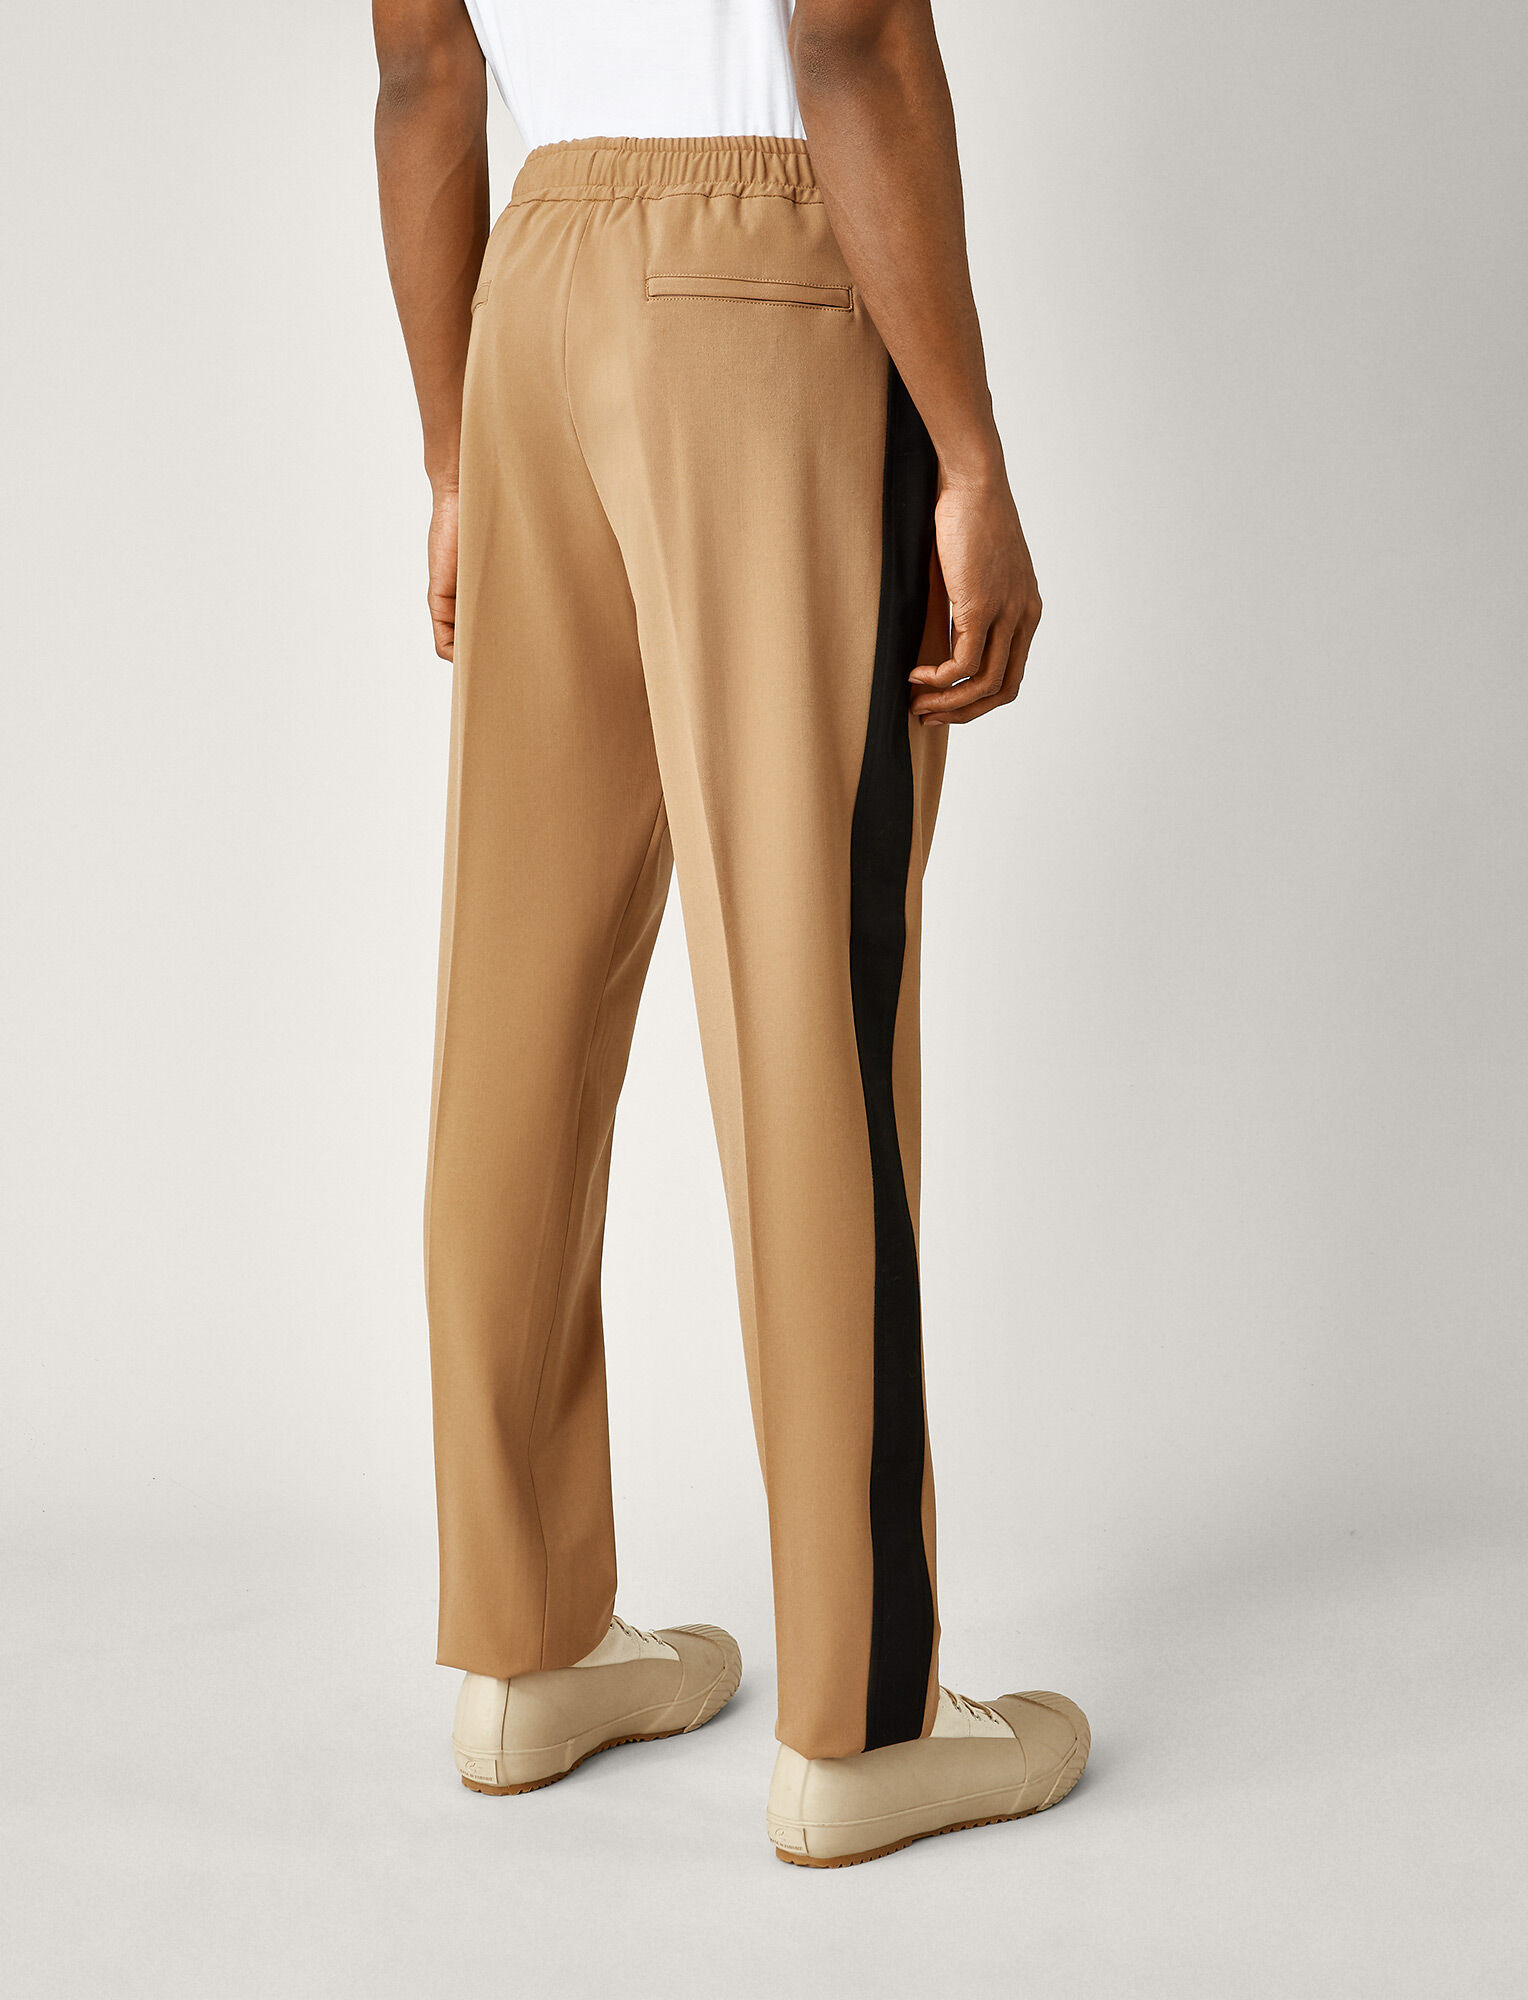 Joseph, Pantalon Eza tricolore en laine techno stretch, in CAMEL COMBO